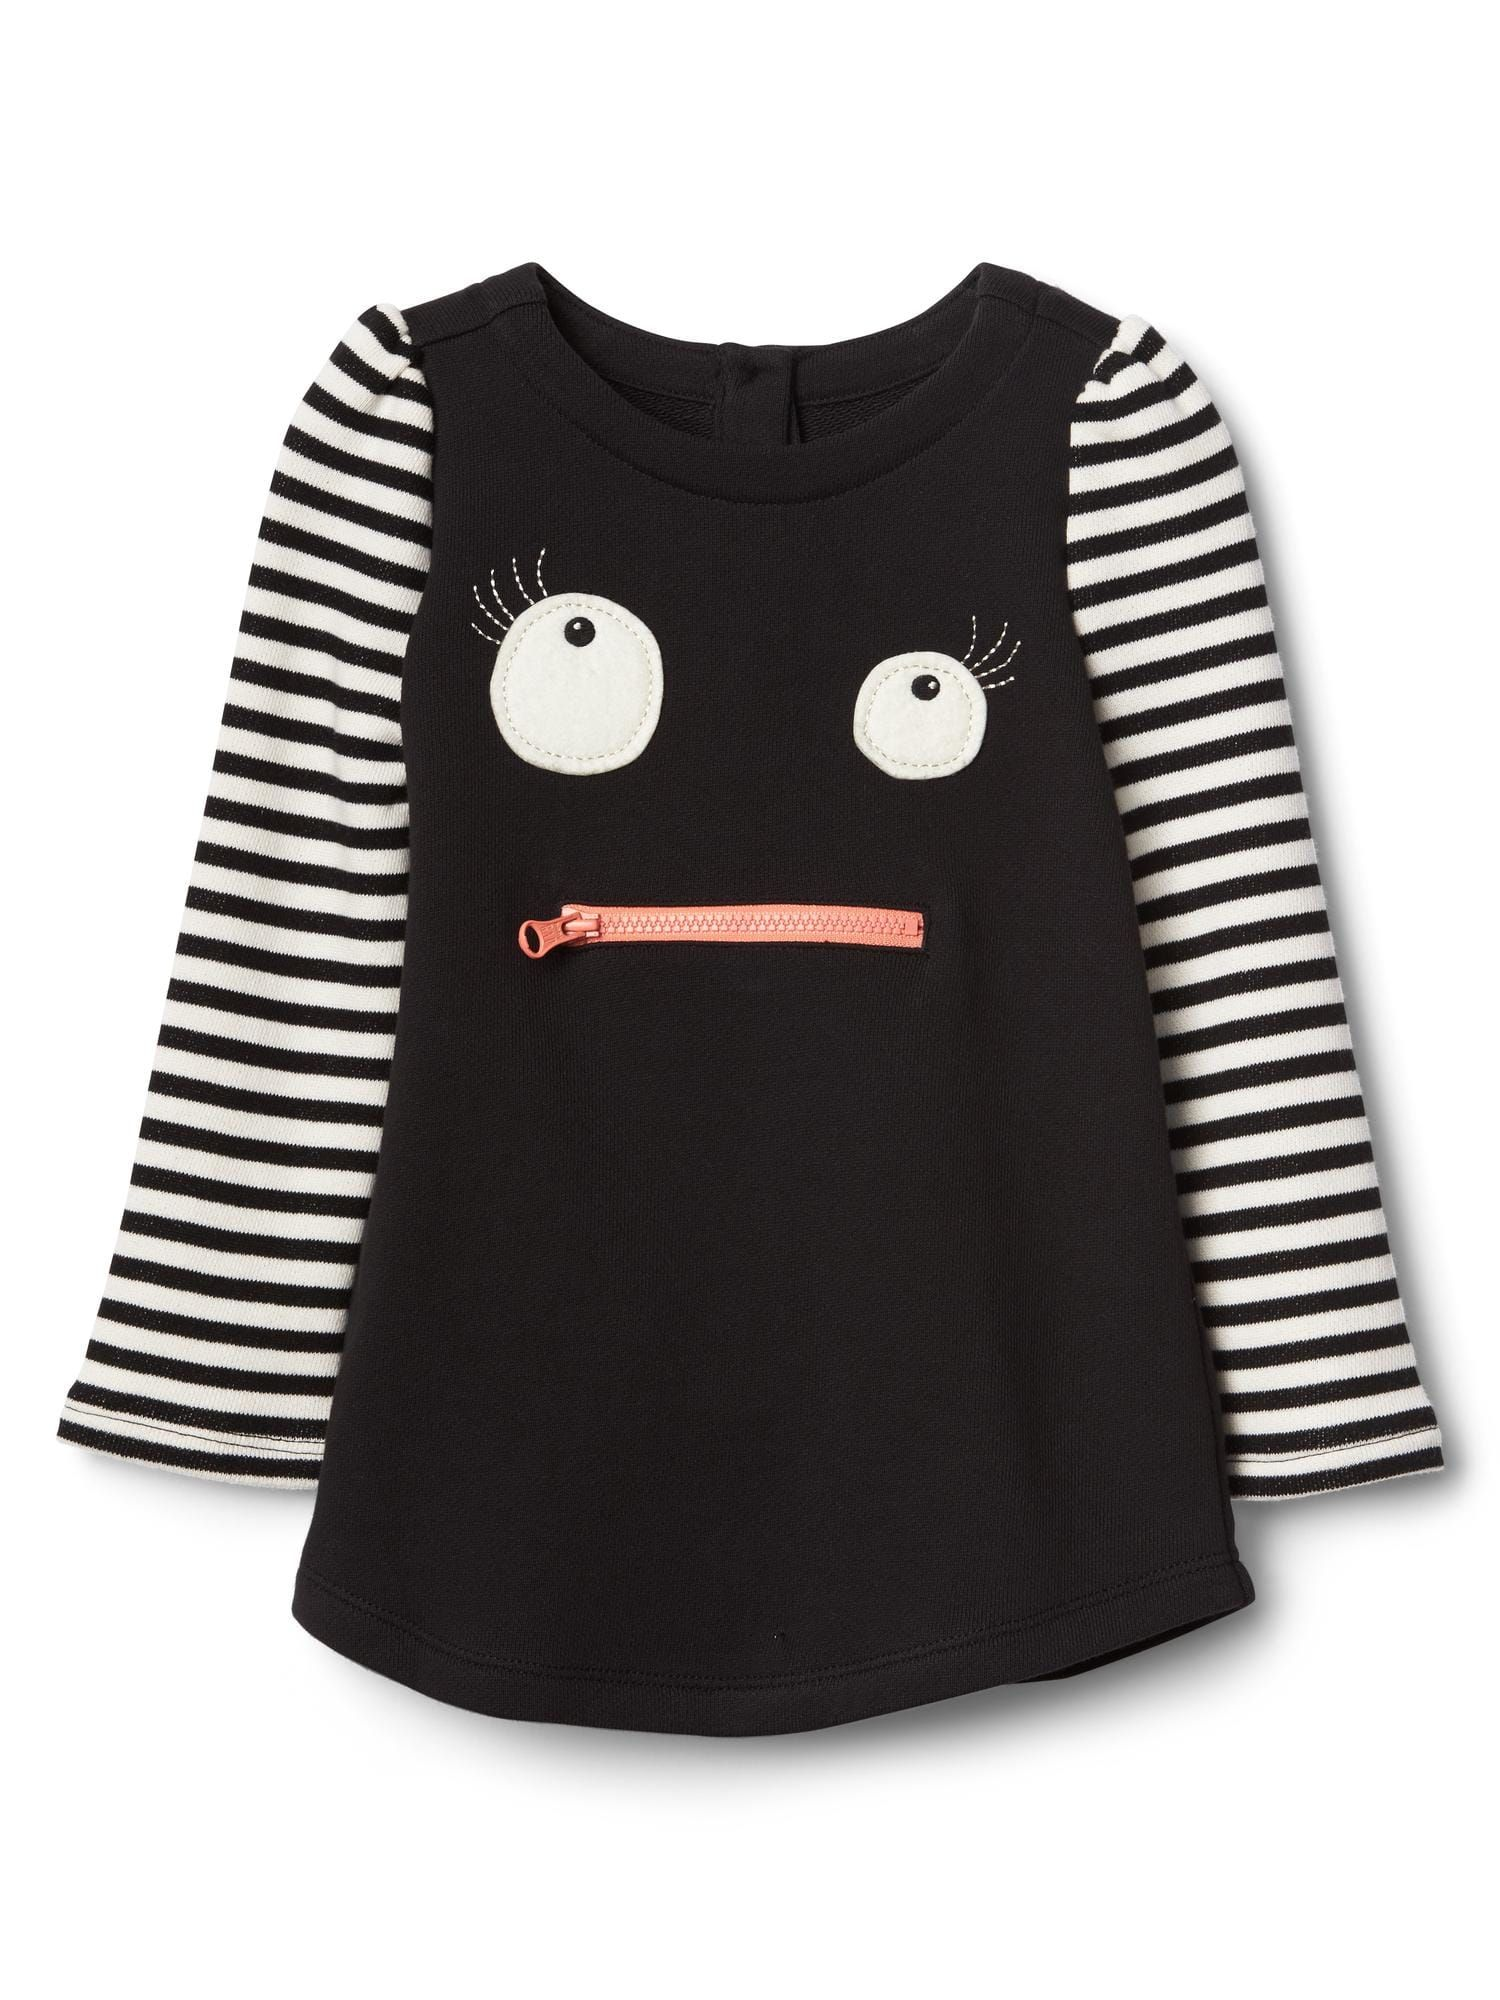 halloween monster stripe dress $34.95 | gap halloween 2017